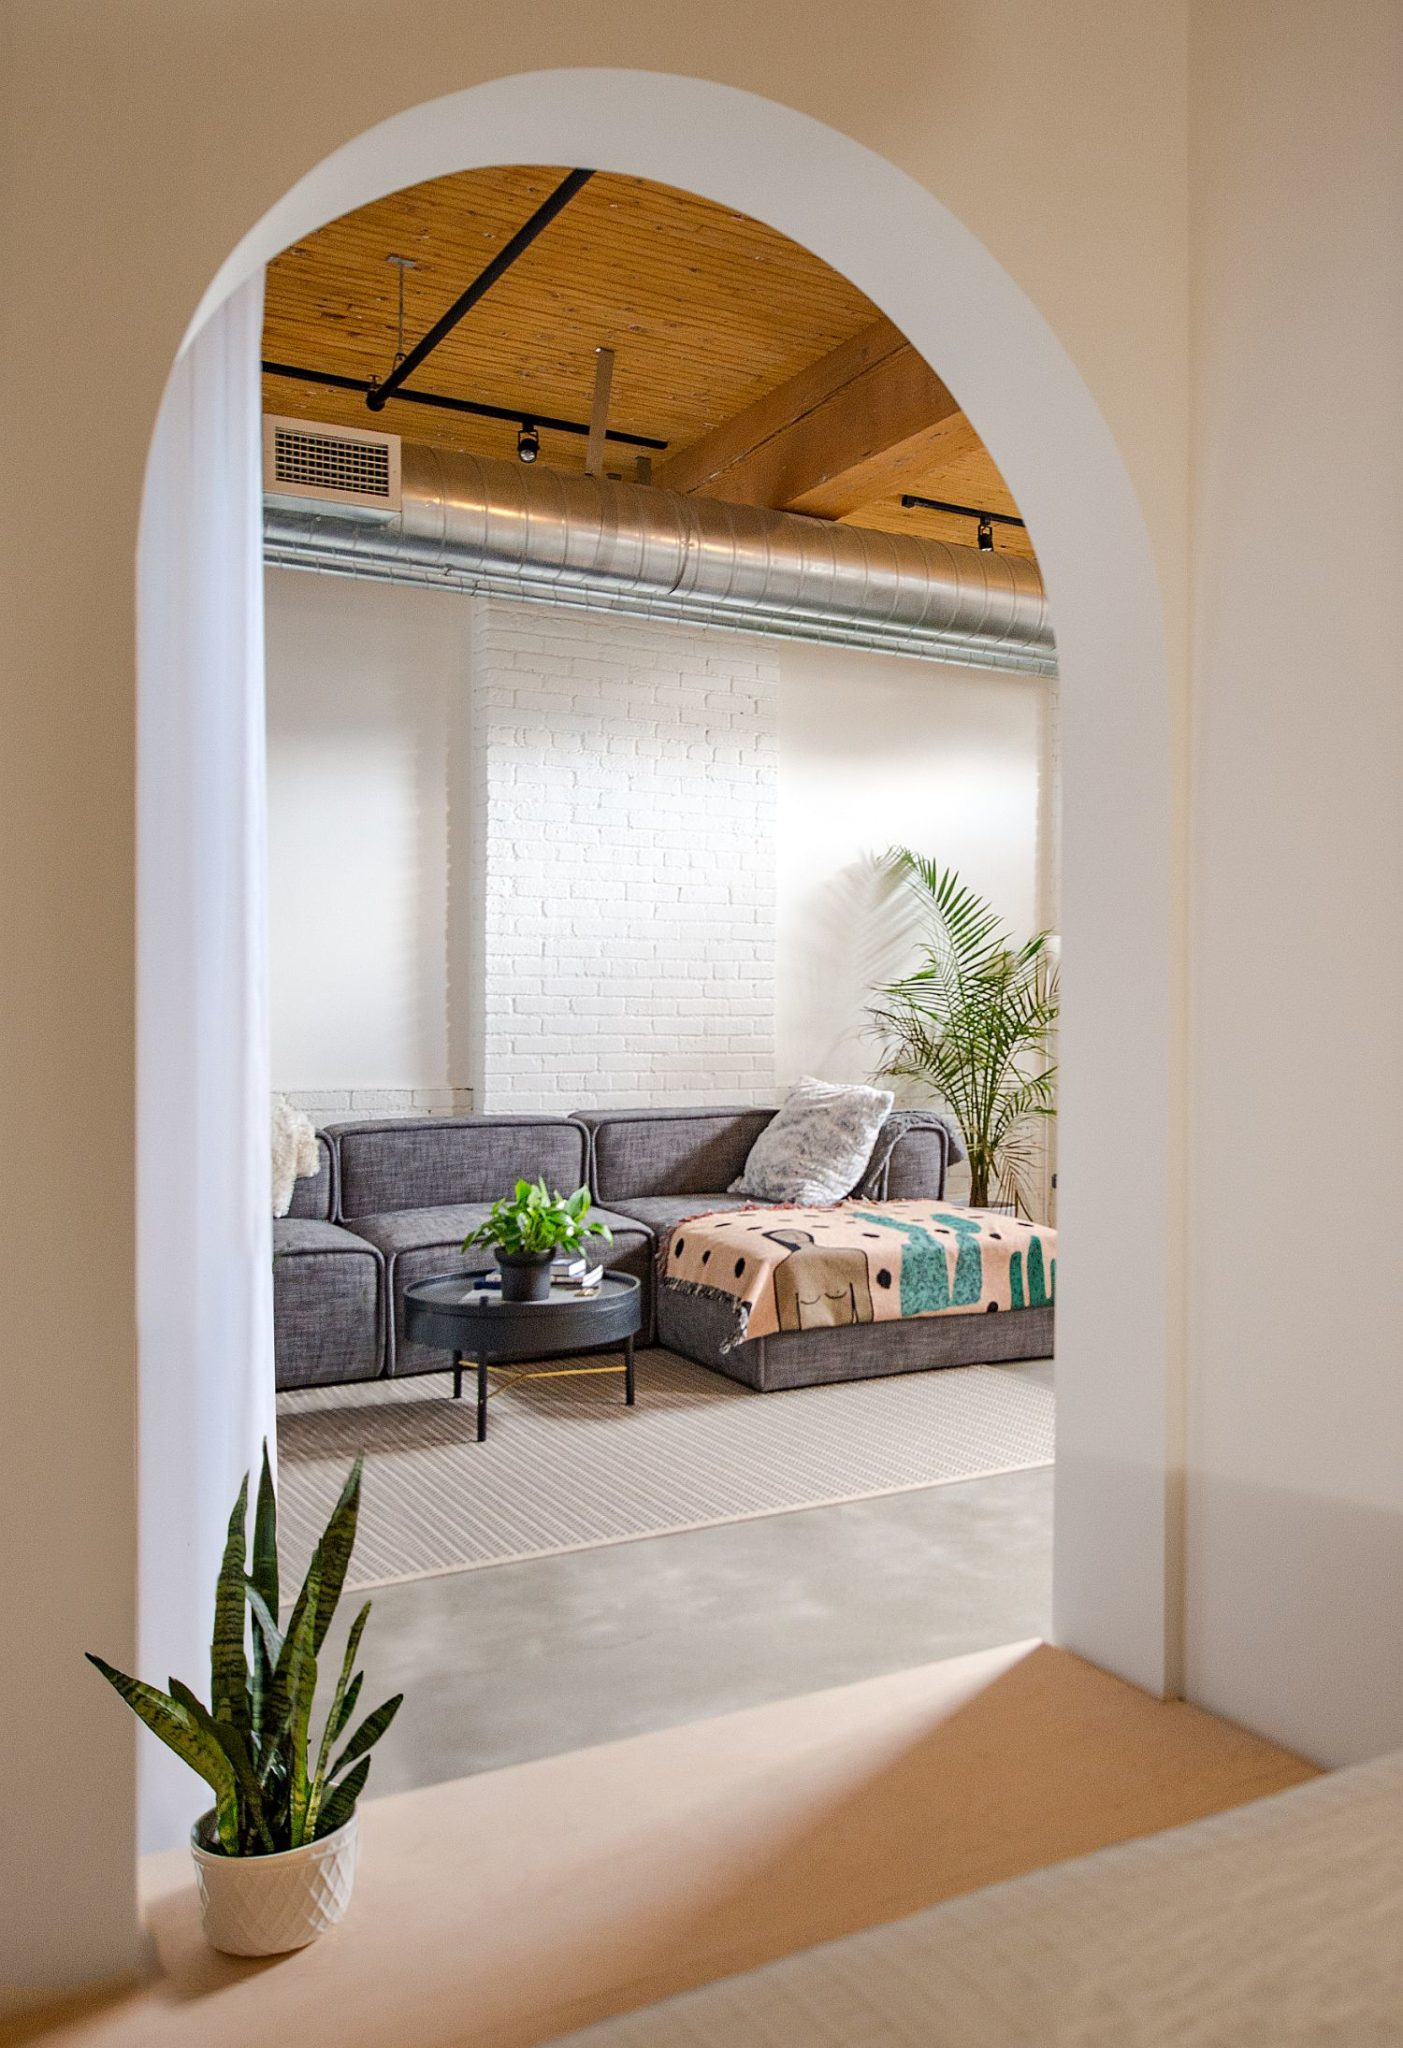 Arched doorways and entryways give the loft a unique look